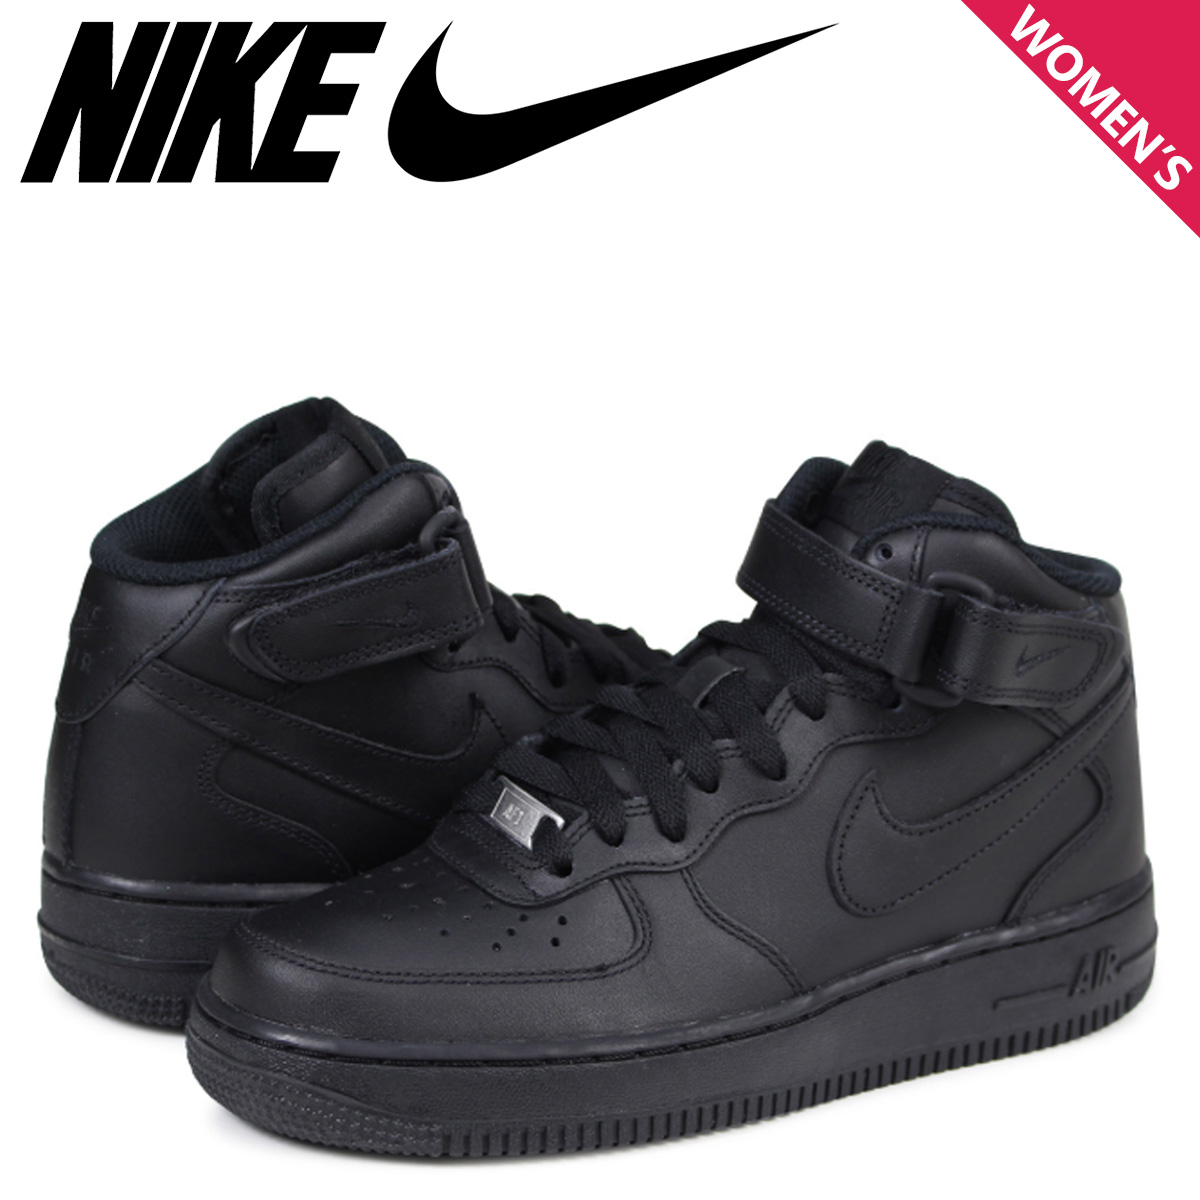 size 40 ad83f 53374 NIKE WMNS AIR FORCE 1 MID Nike air force 1 sneakers Lady s black 366,731-001